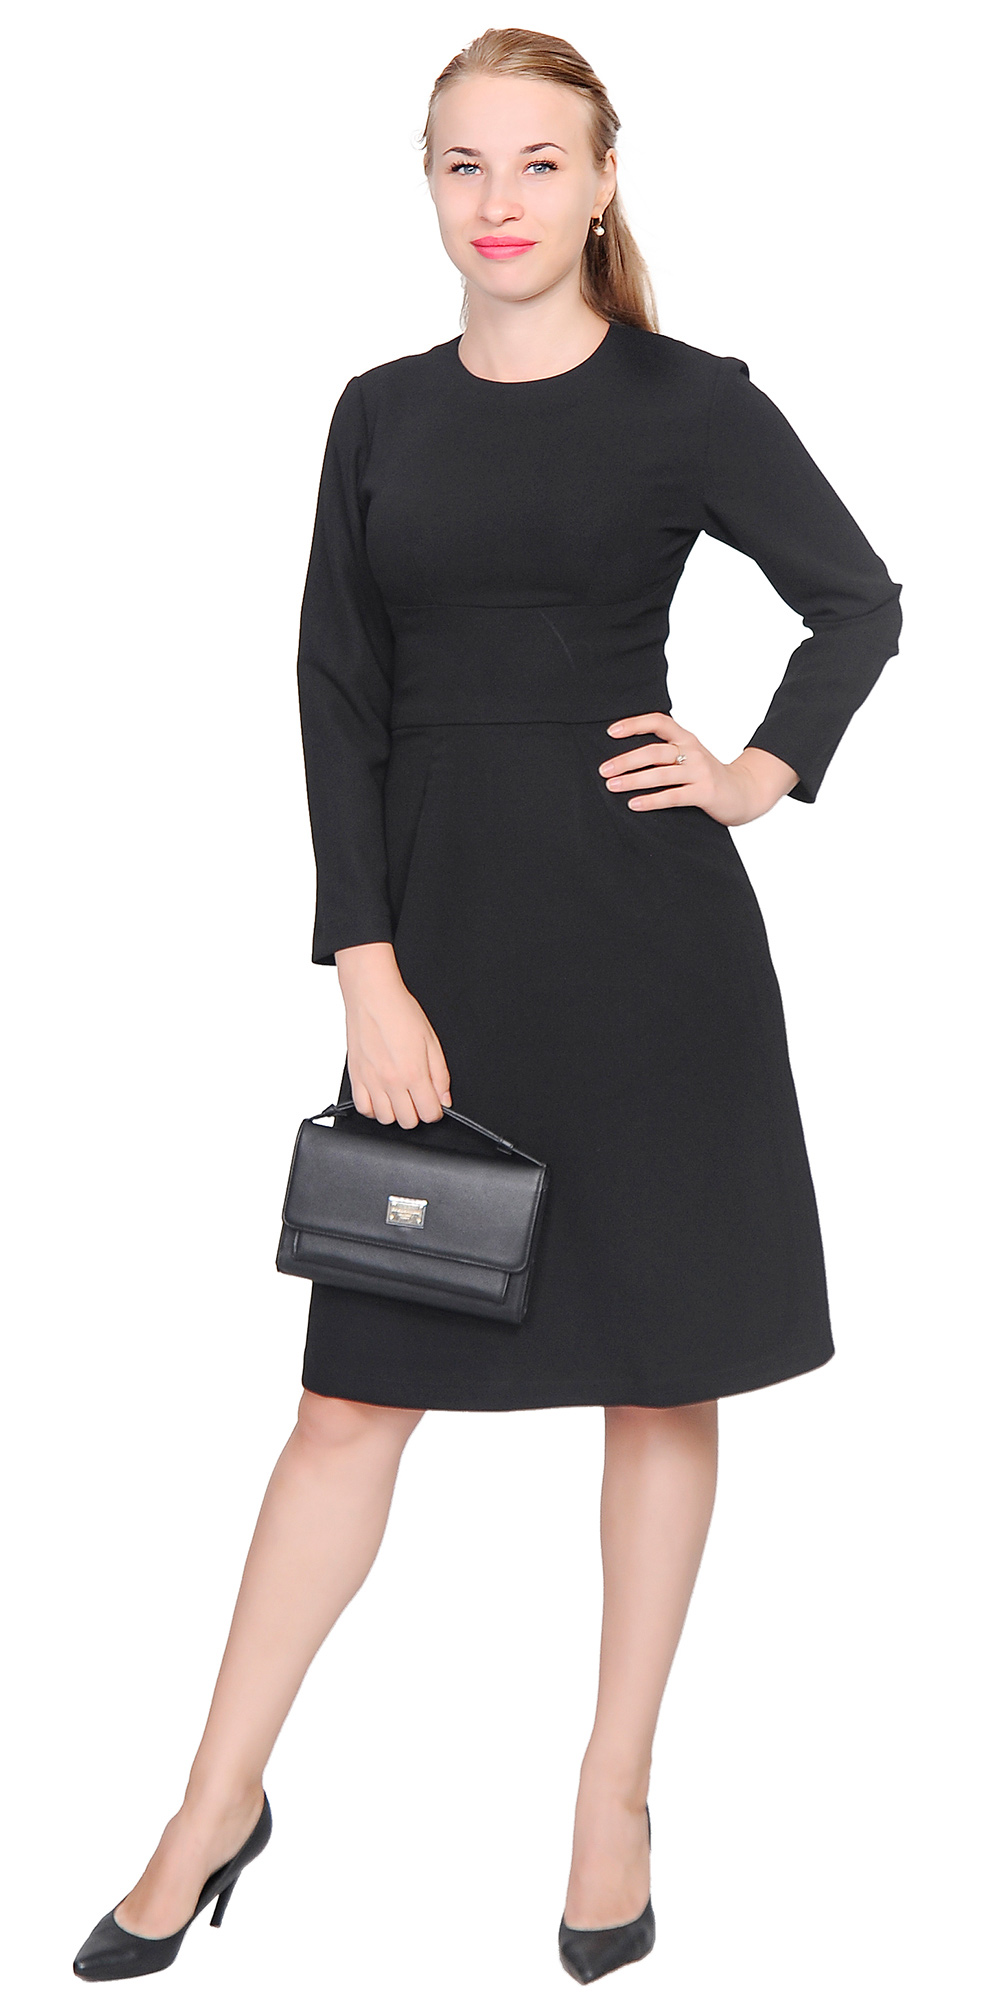 man women office work casual for clothes hairstyle dress